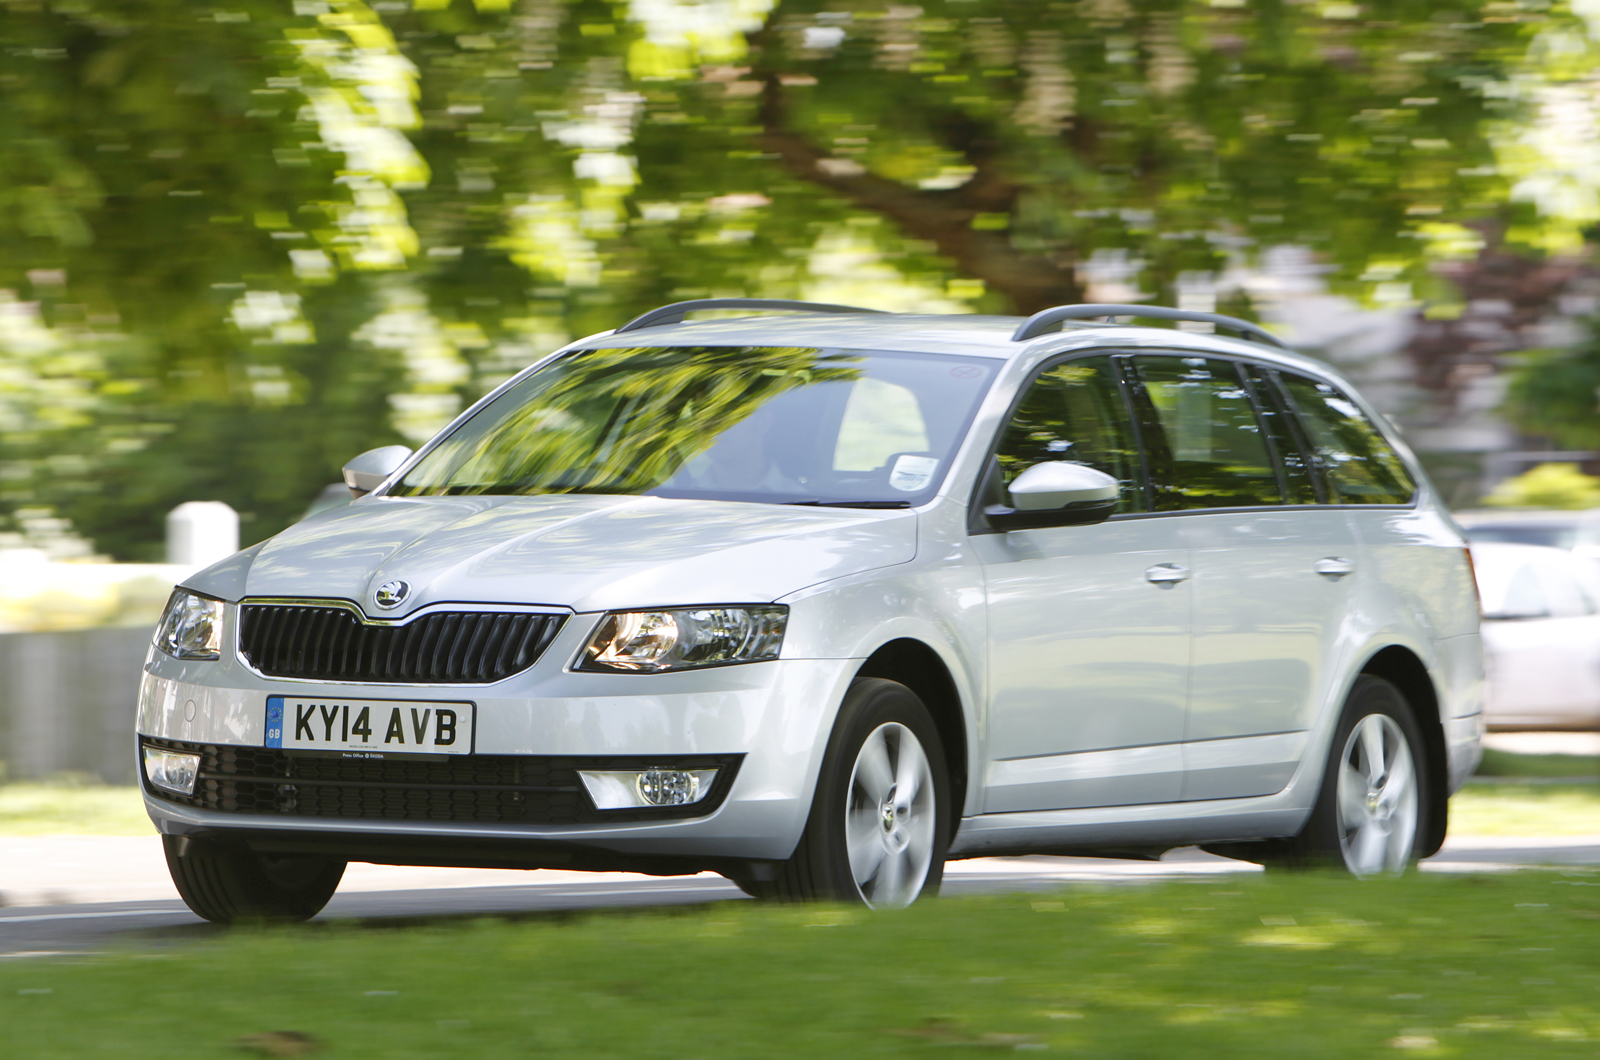 skoda octavia 4x4 estate uk first drive. Black Bedroom Furniture Sets. Home Design Ideas